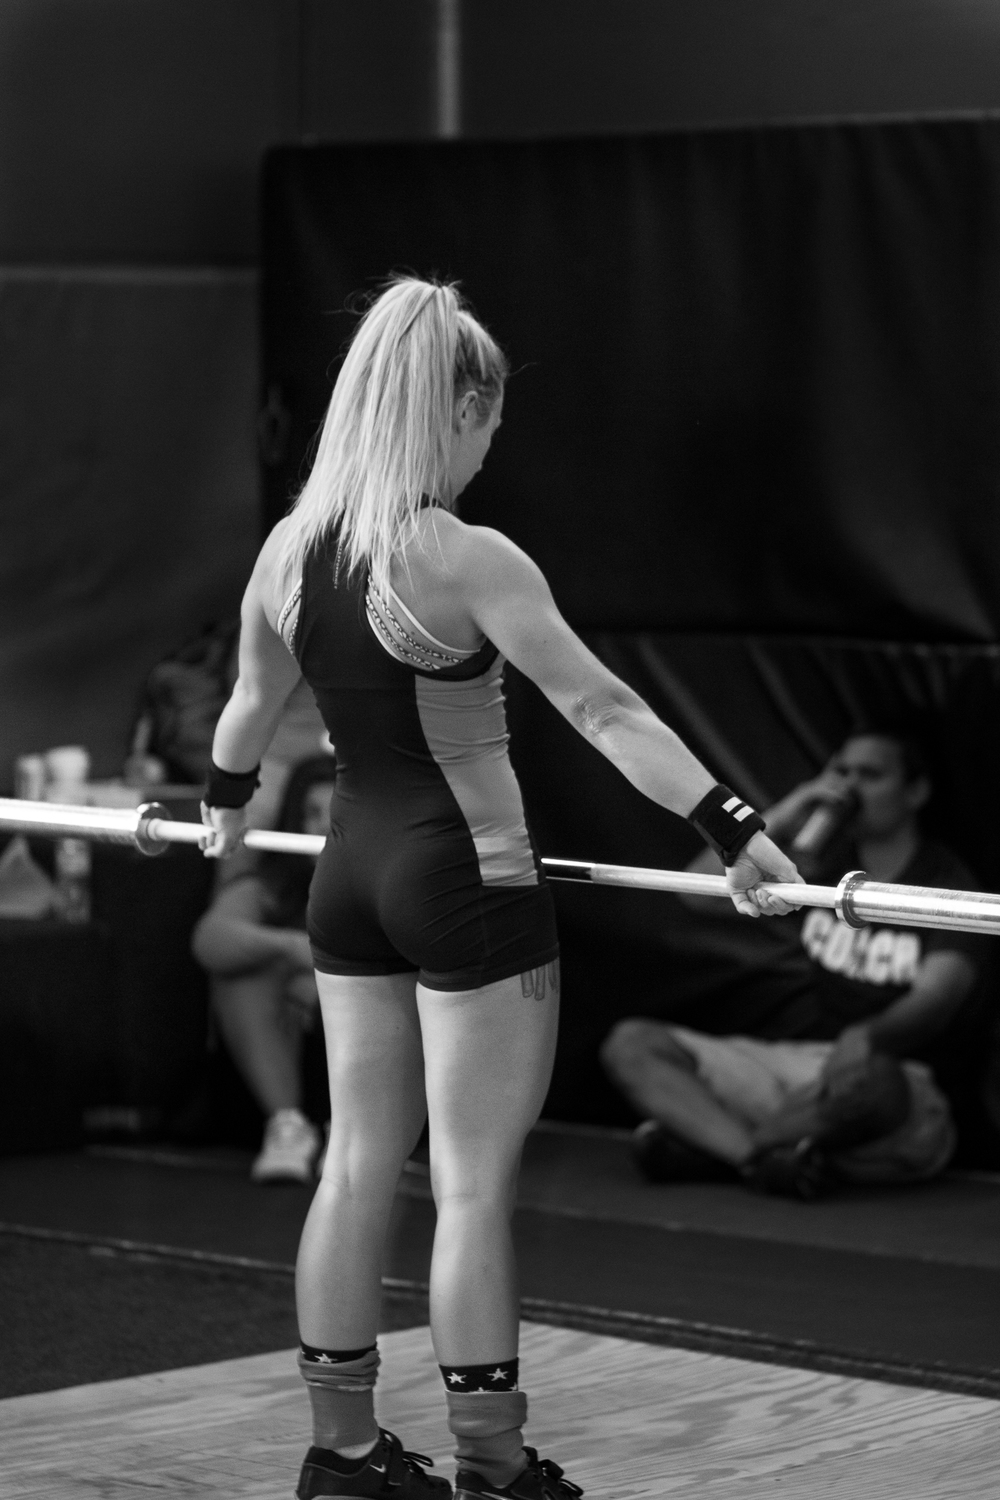 weightlifting-photography-black-white-connecticut-open-weightlifting-meet-vp (4 of 7)-2.jpg